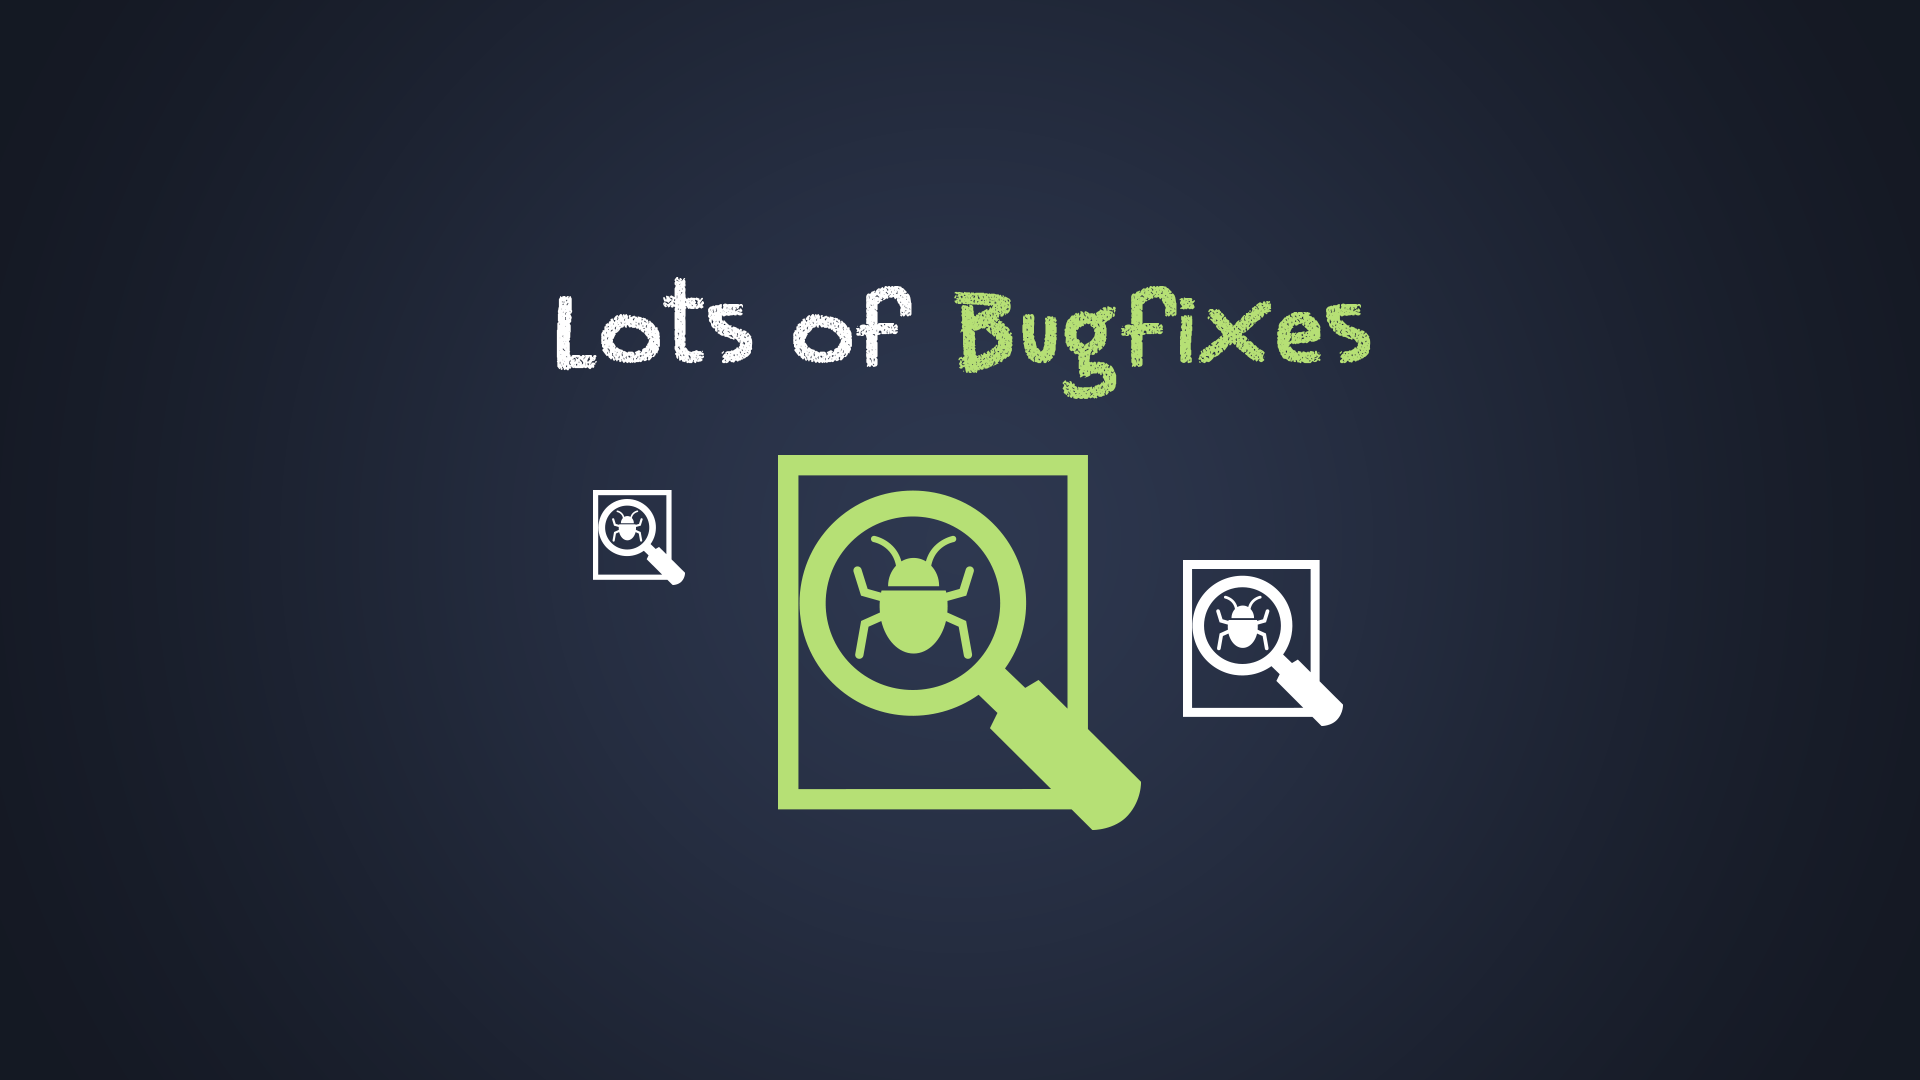 Lots of Bugfixes